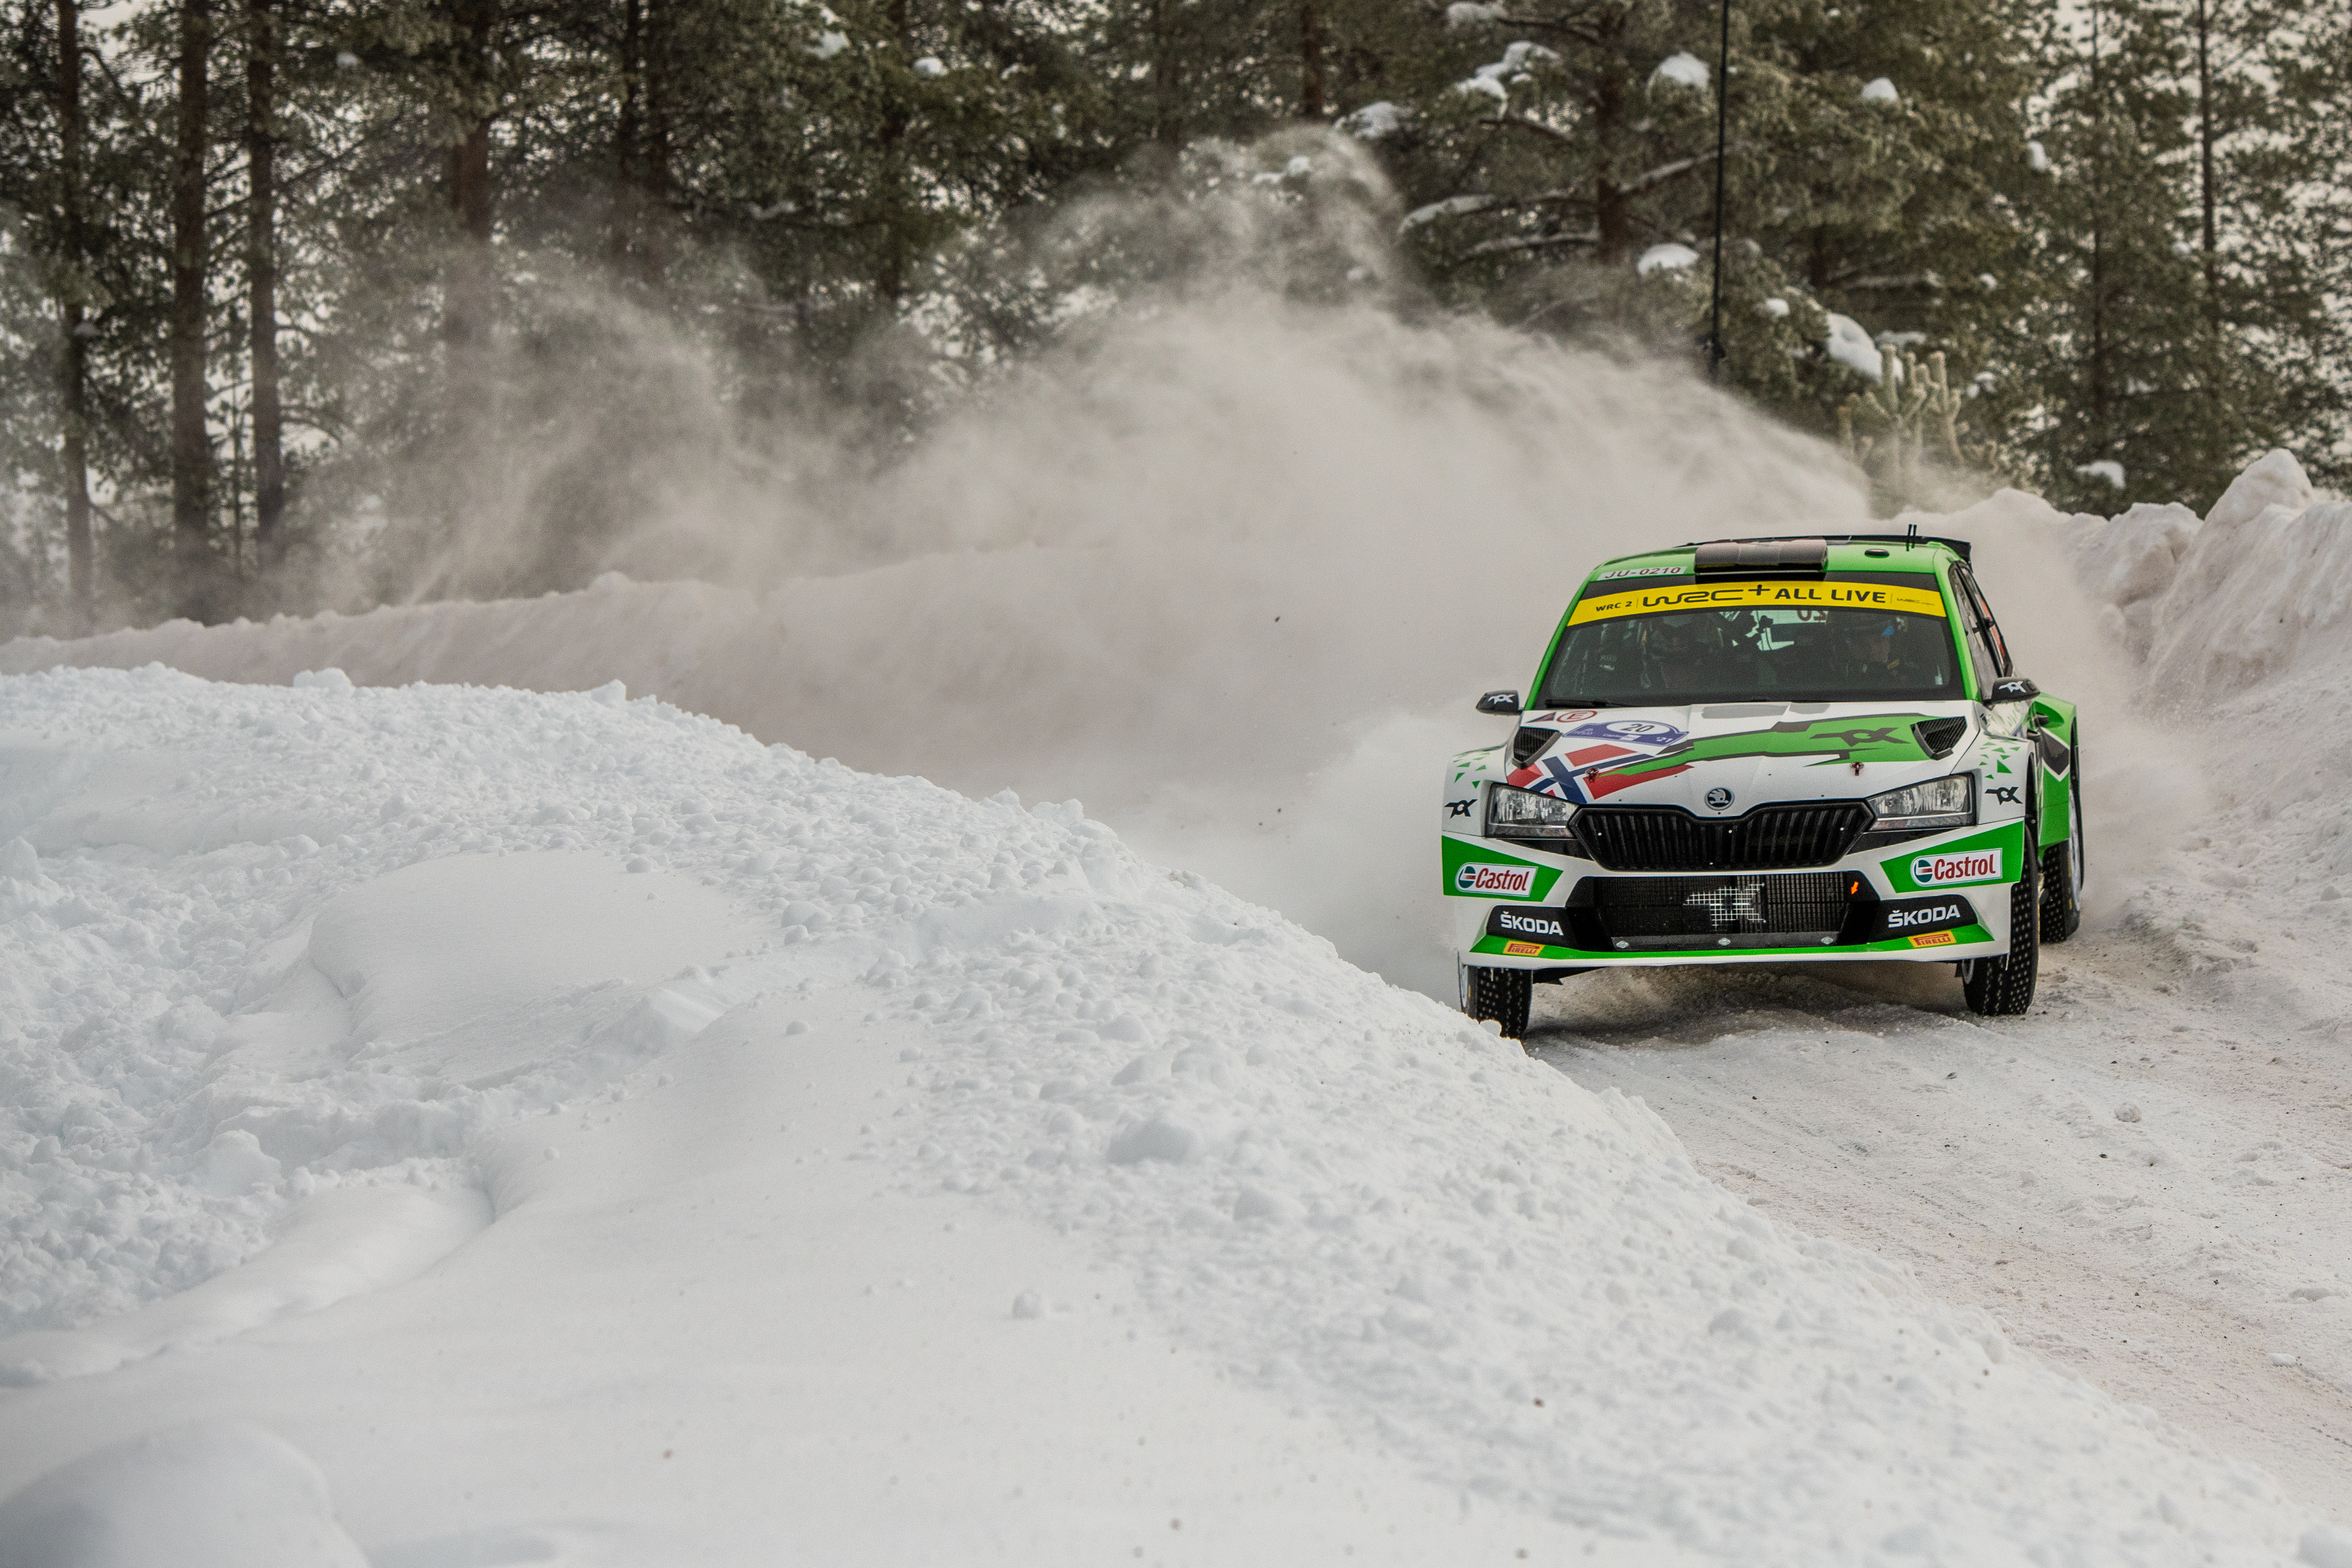 Arctic Rally Finland: SKODA Motorsport supported Andreas Mikkelsen finishes Friday leg third in WRC2 - Image 8